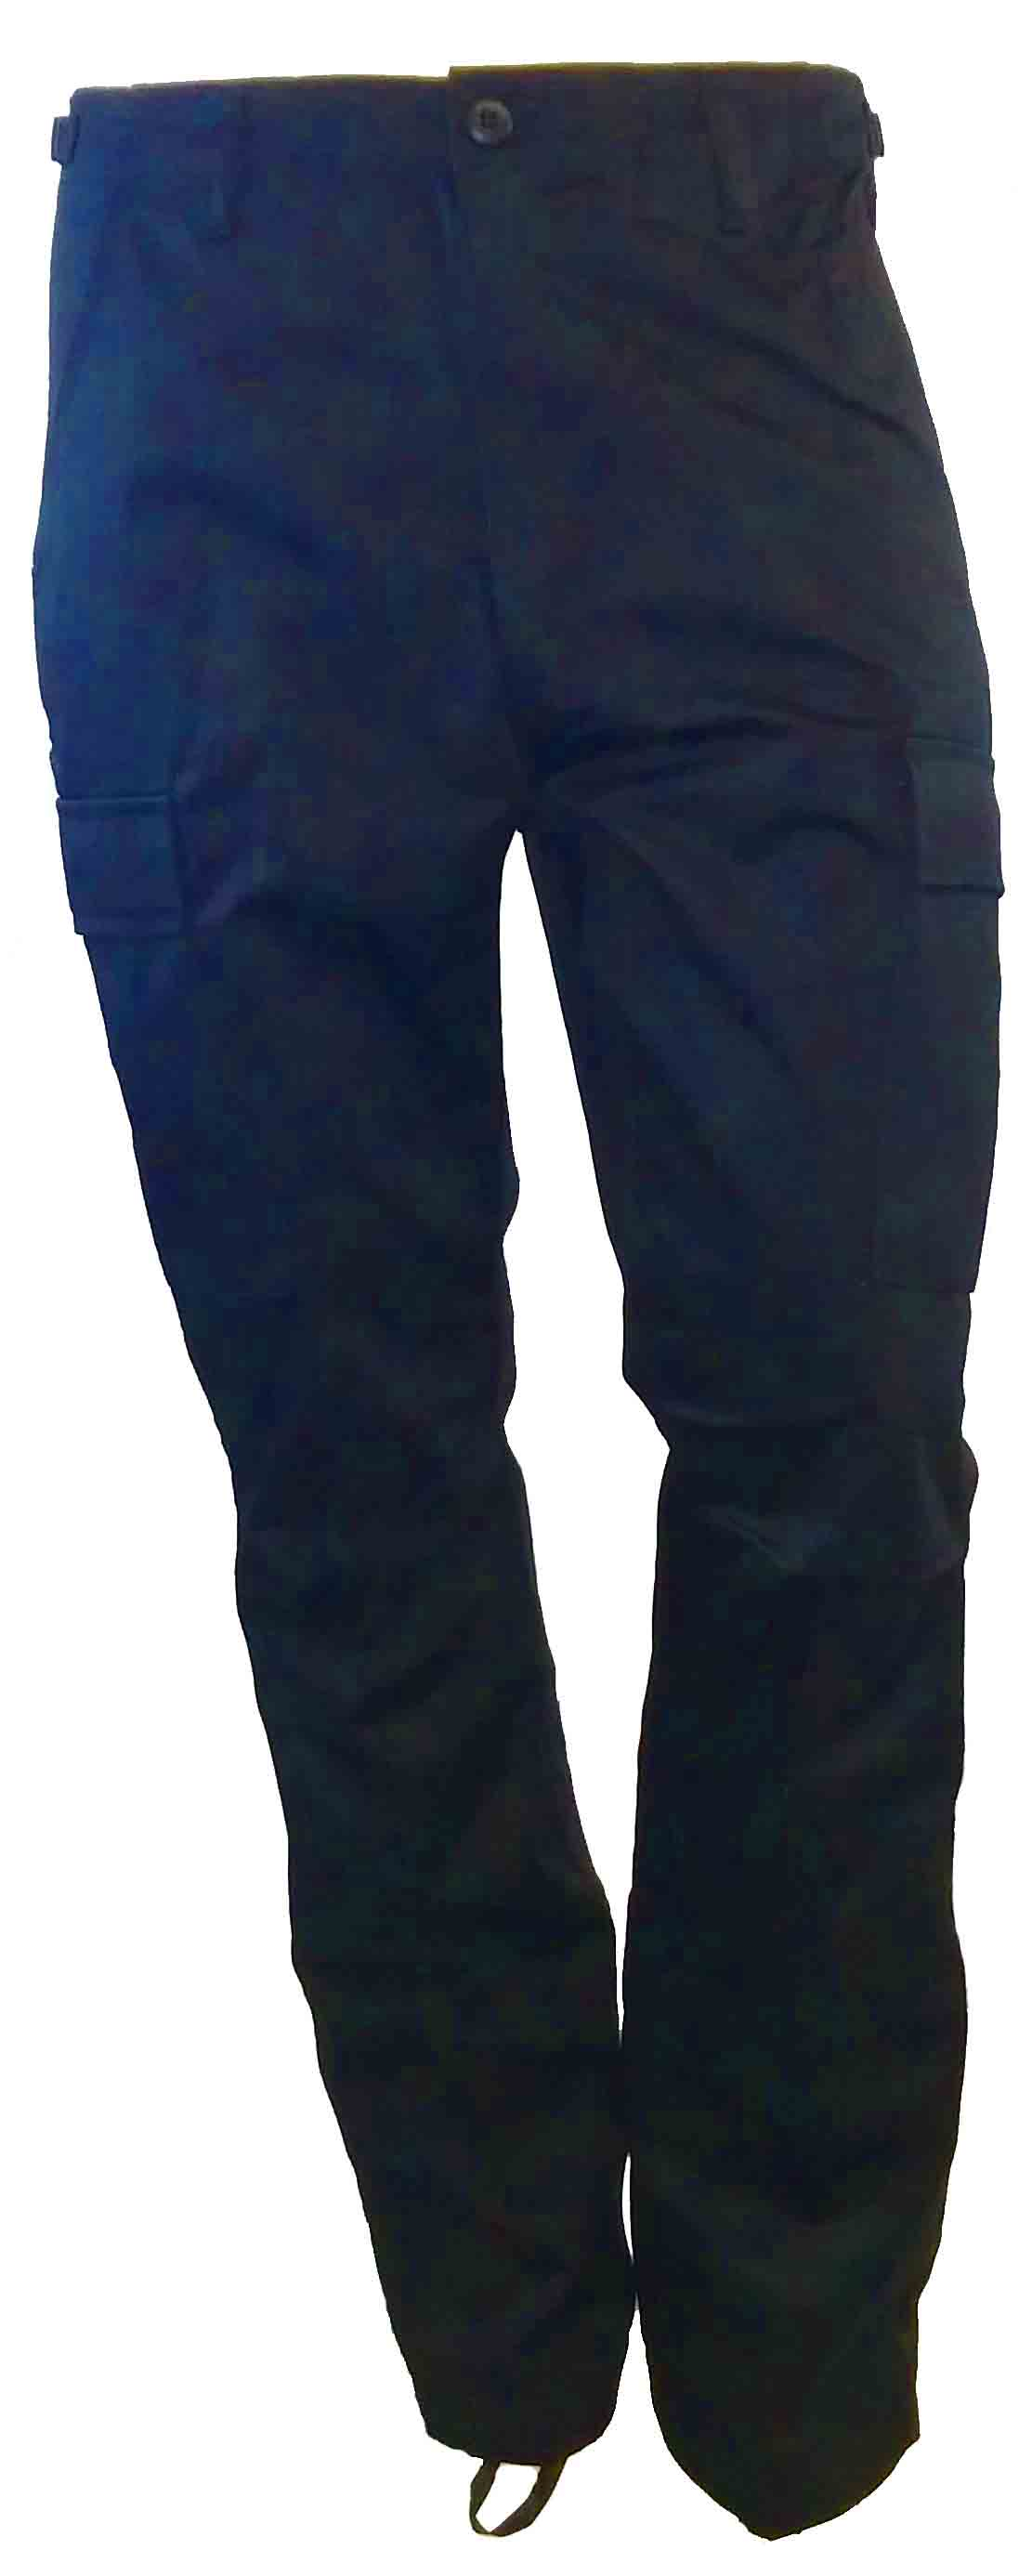 BDU army style navy pants